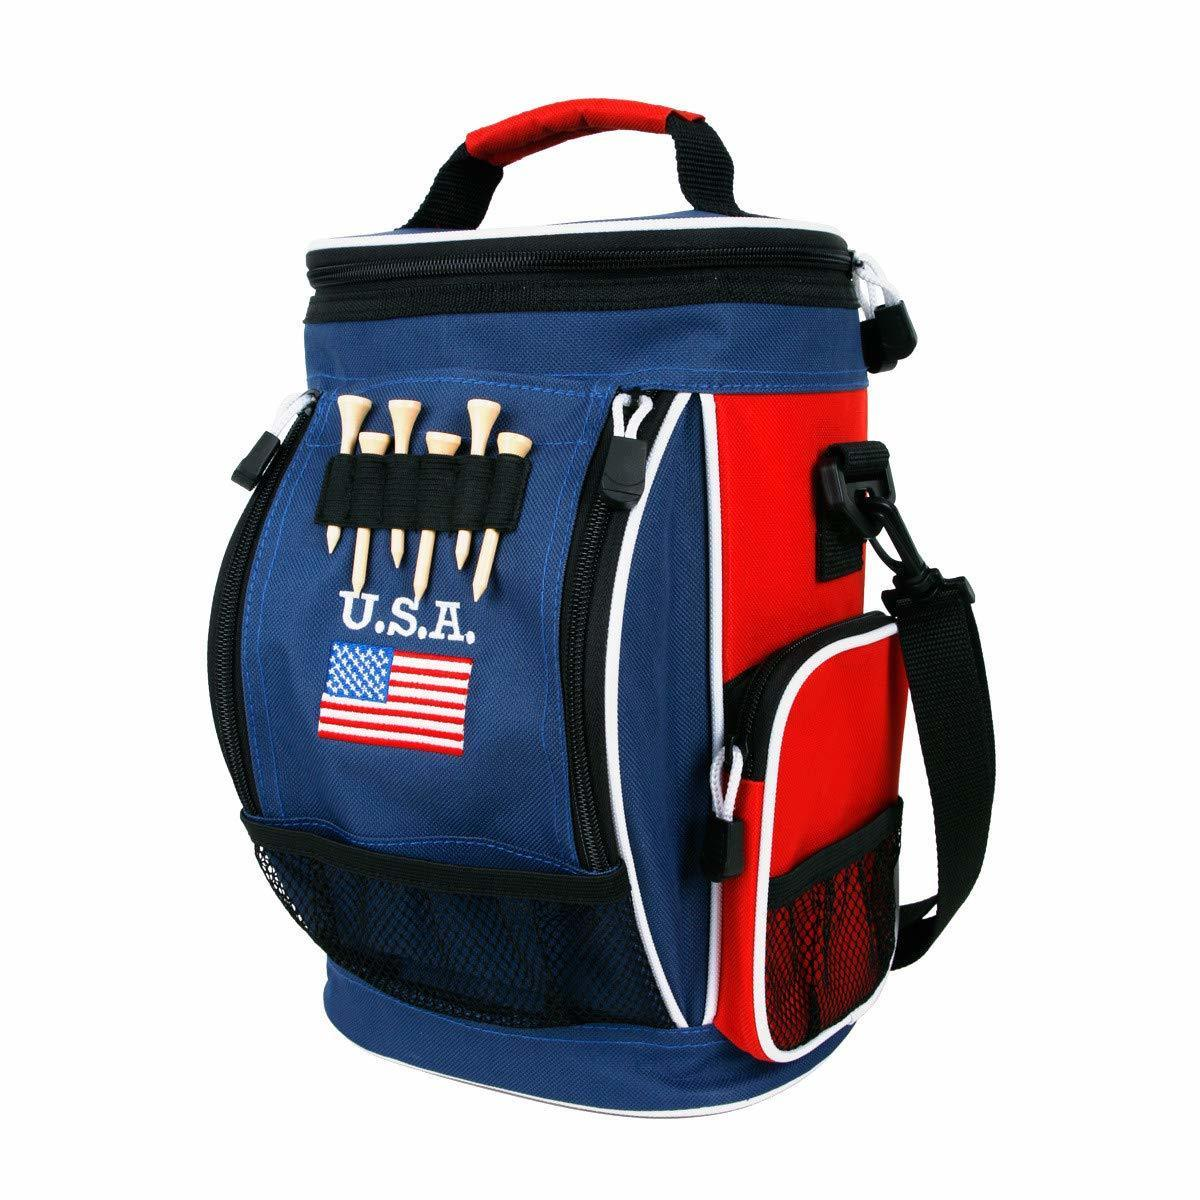 best golf cooler for pushcart